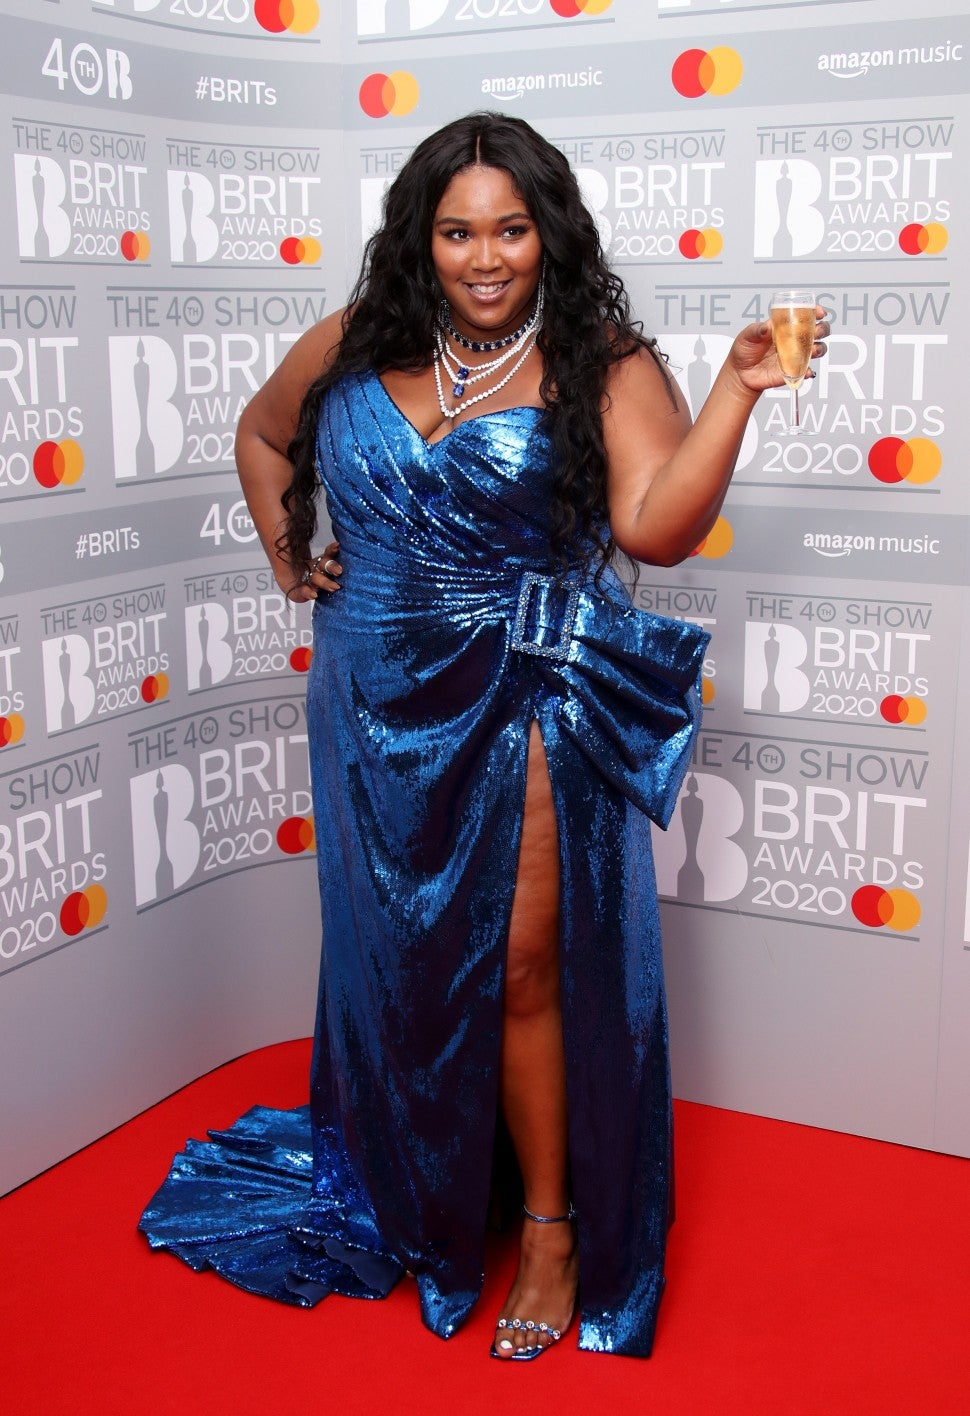 Lizzo at 2020 Brit Awards winners room